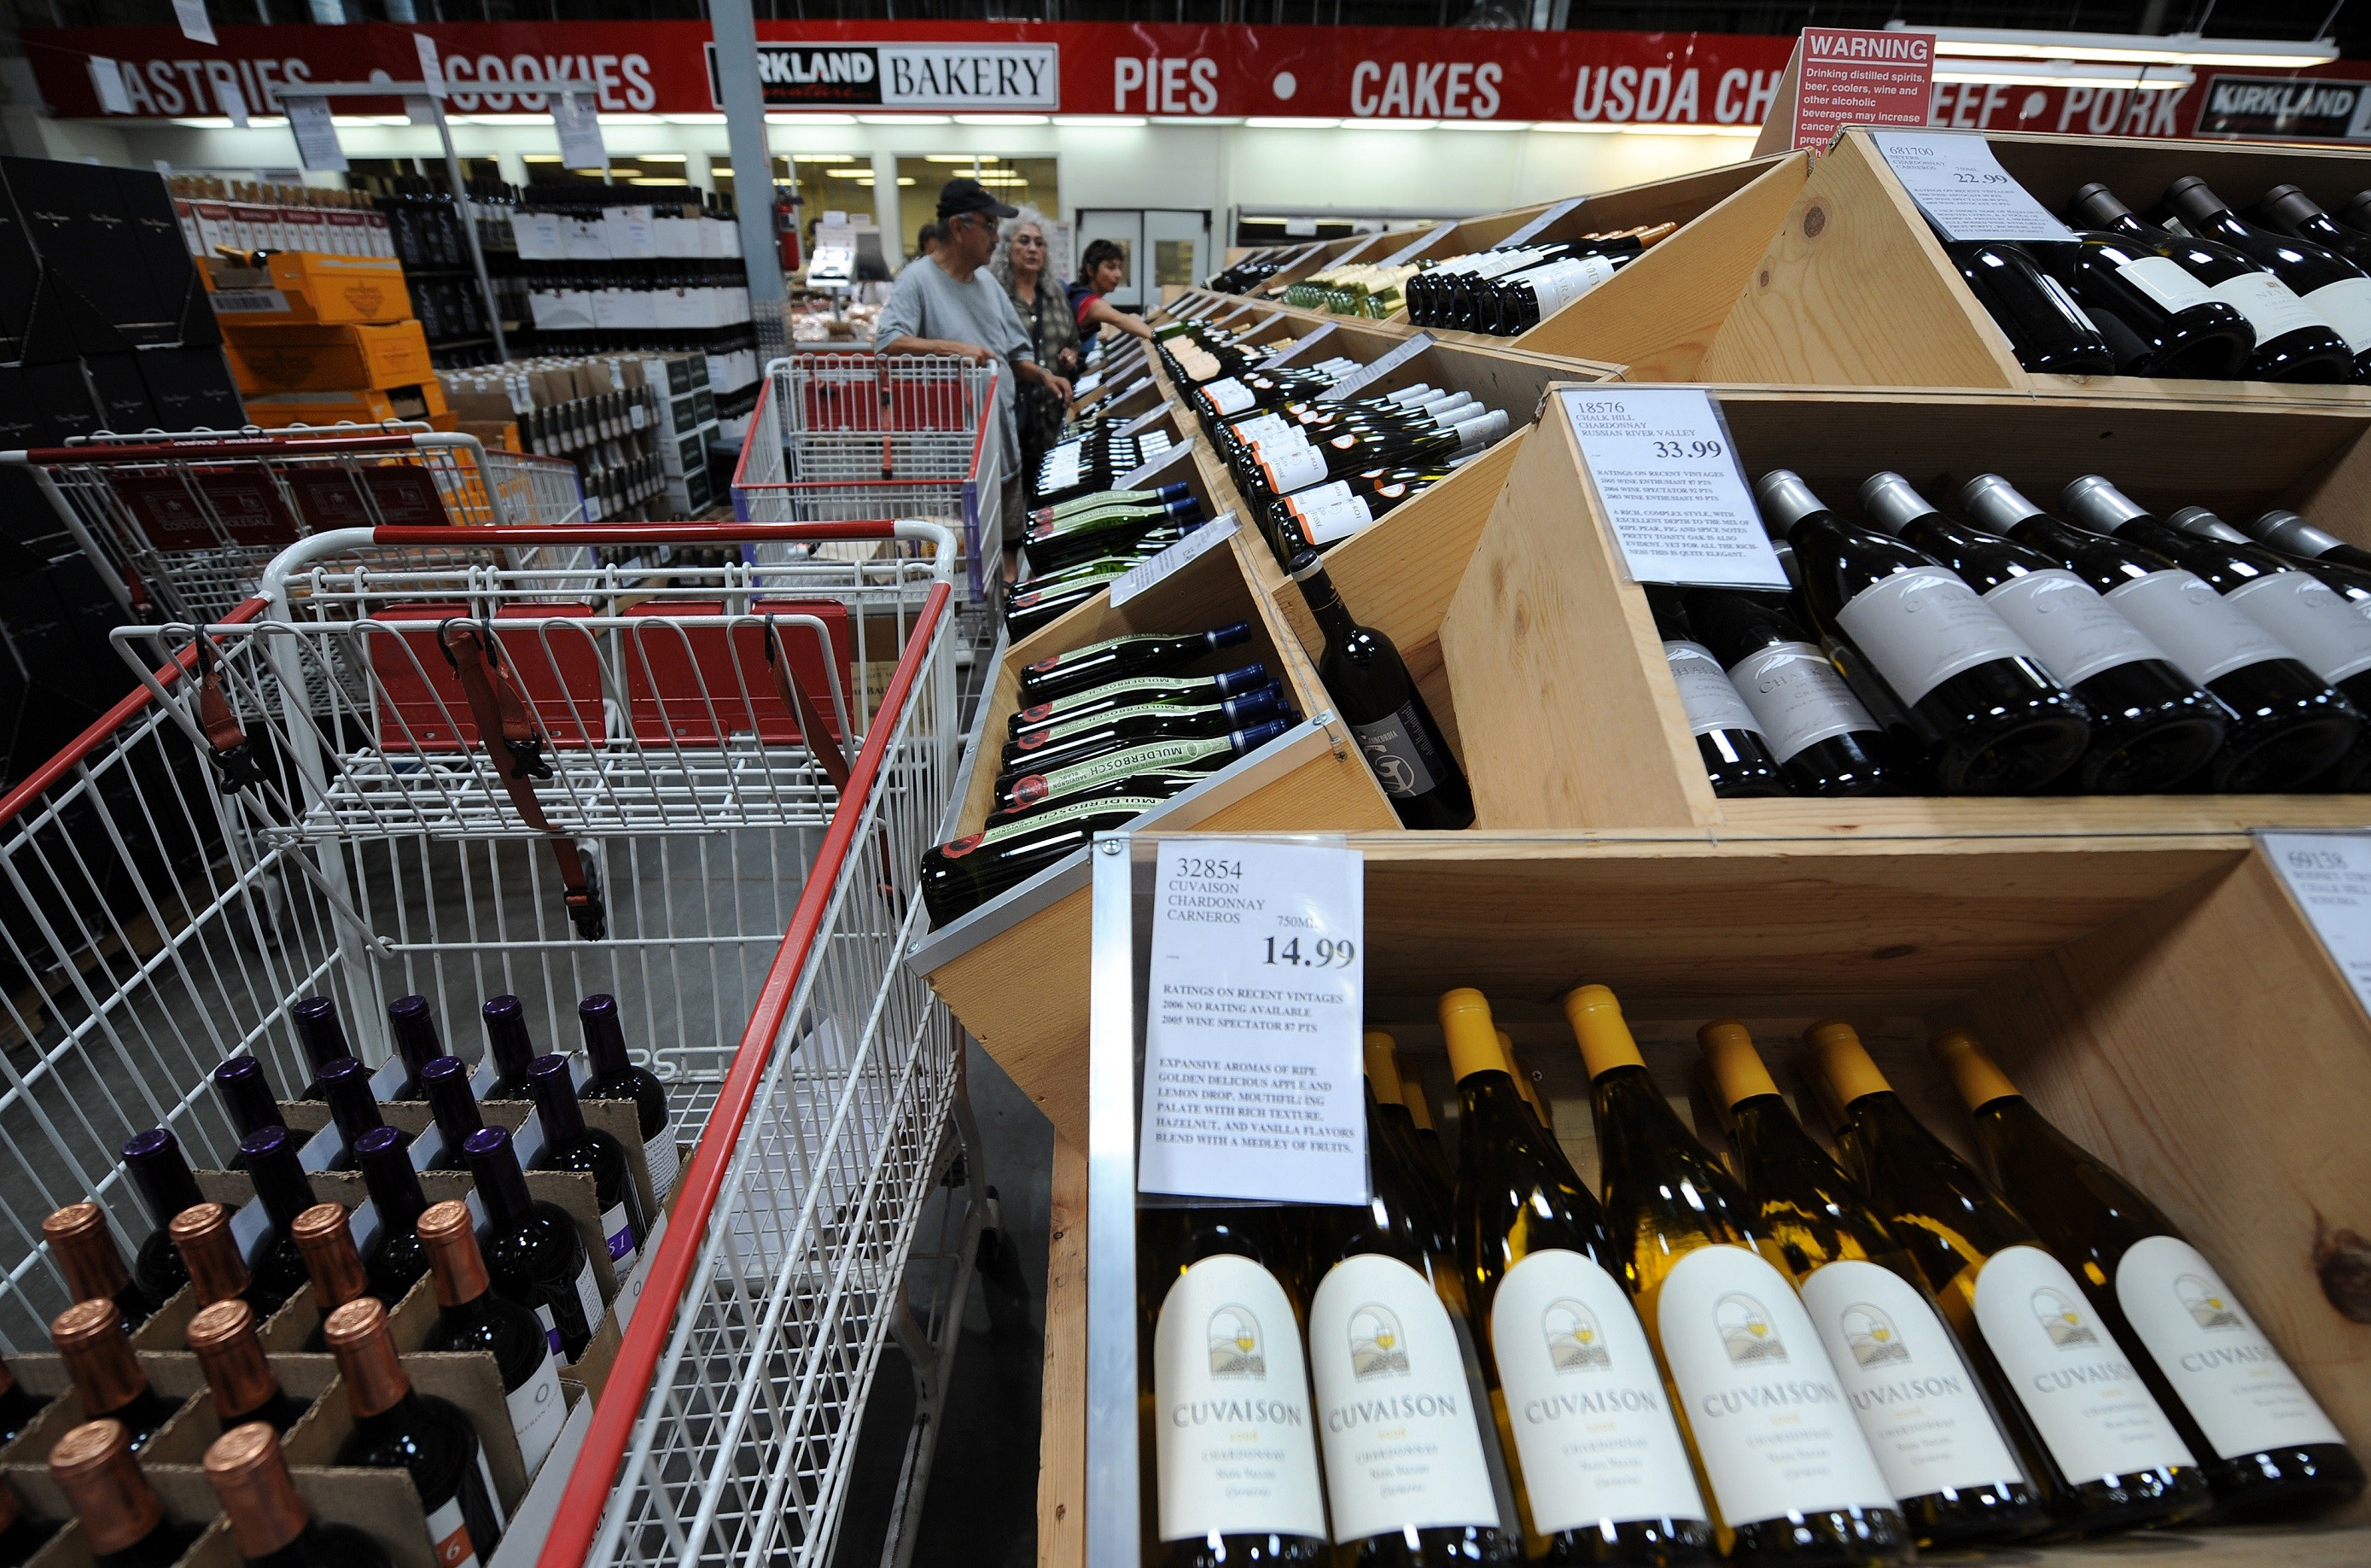 Costco Wine racks